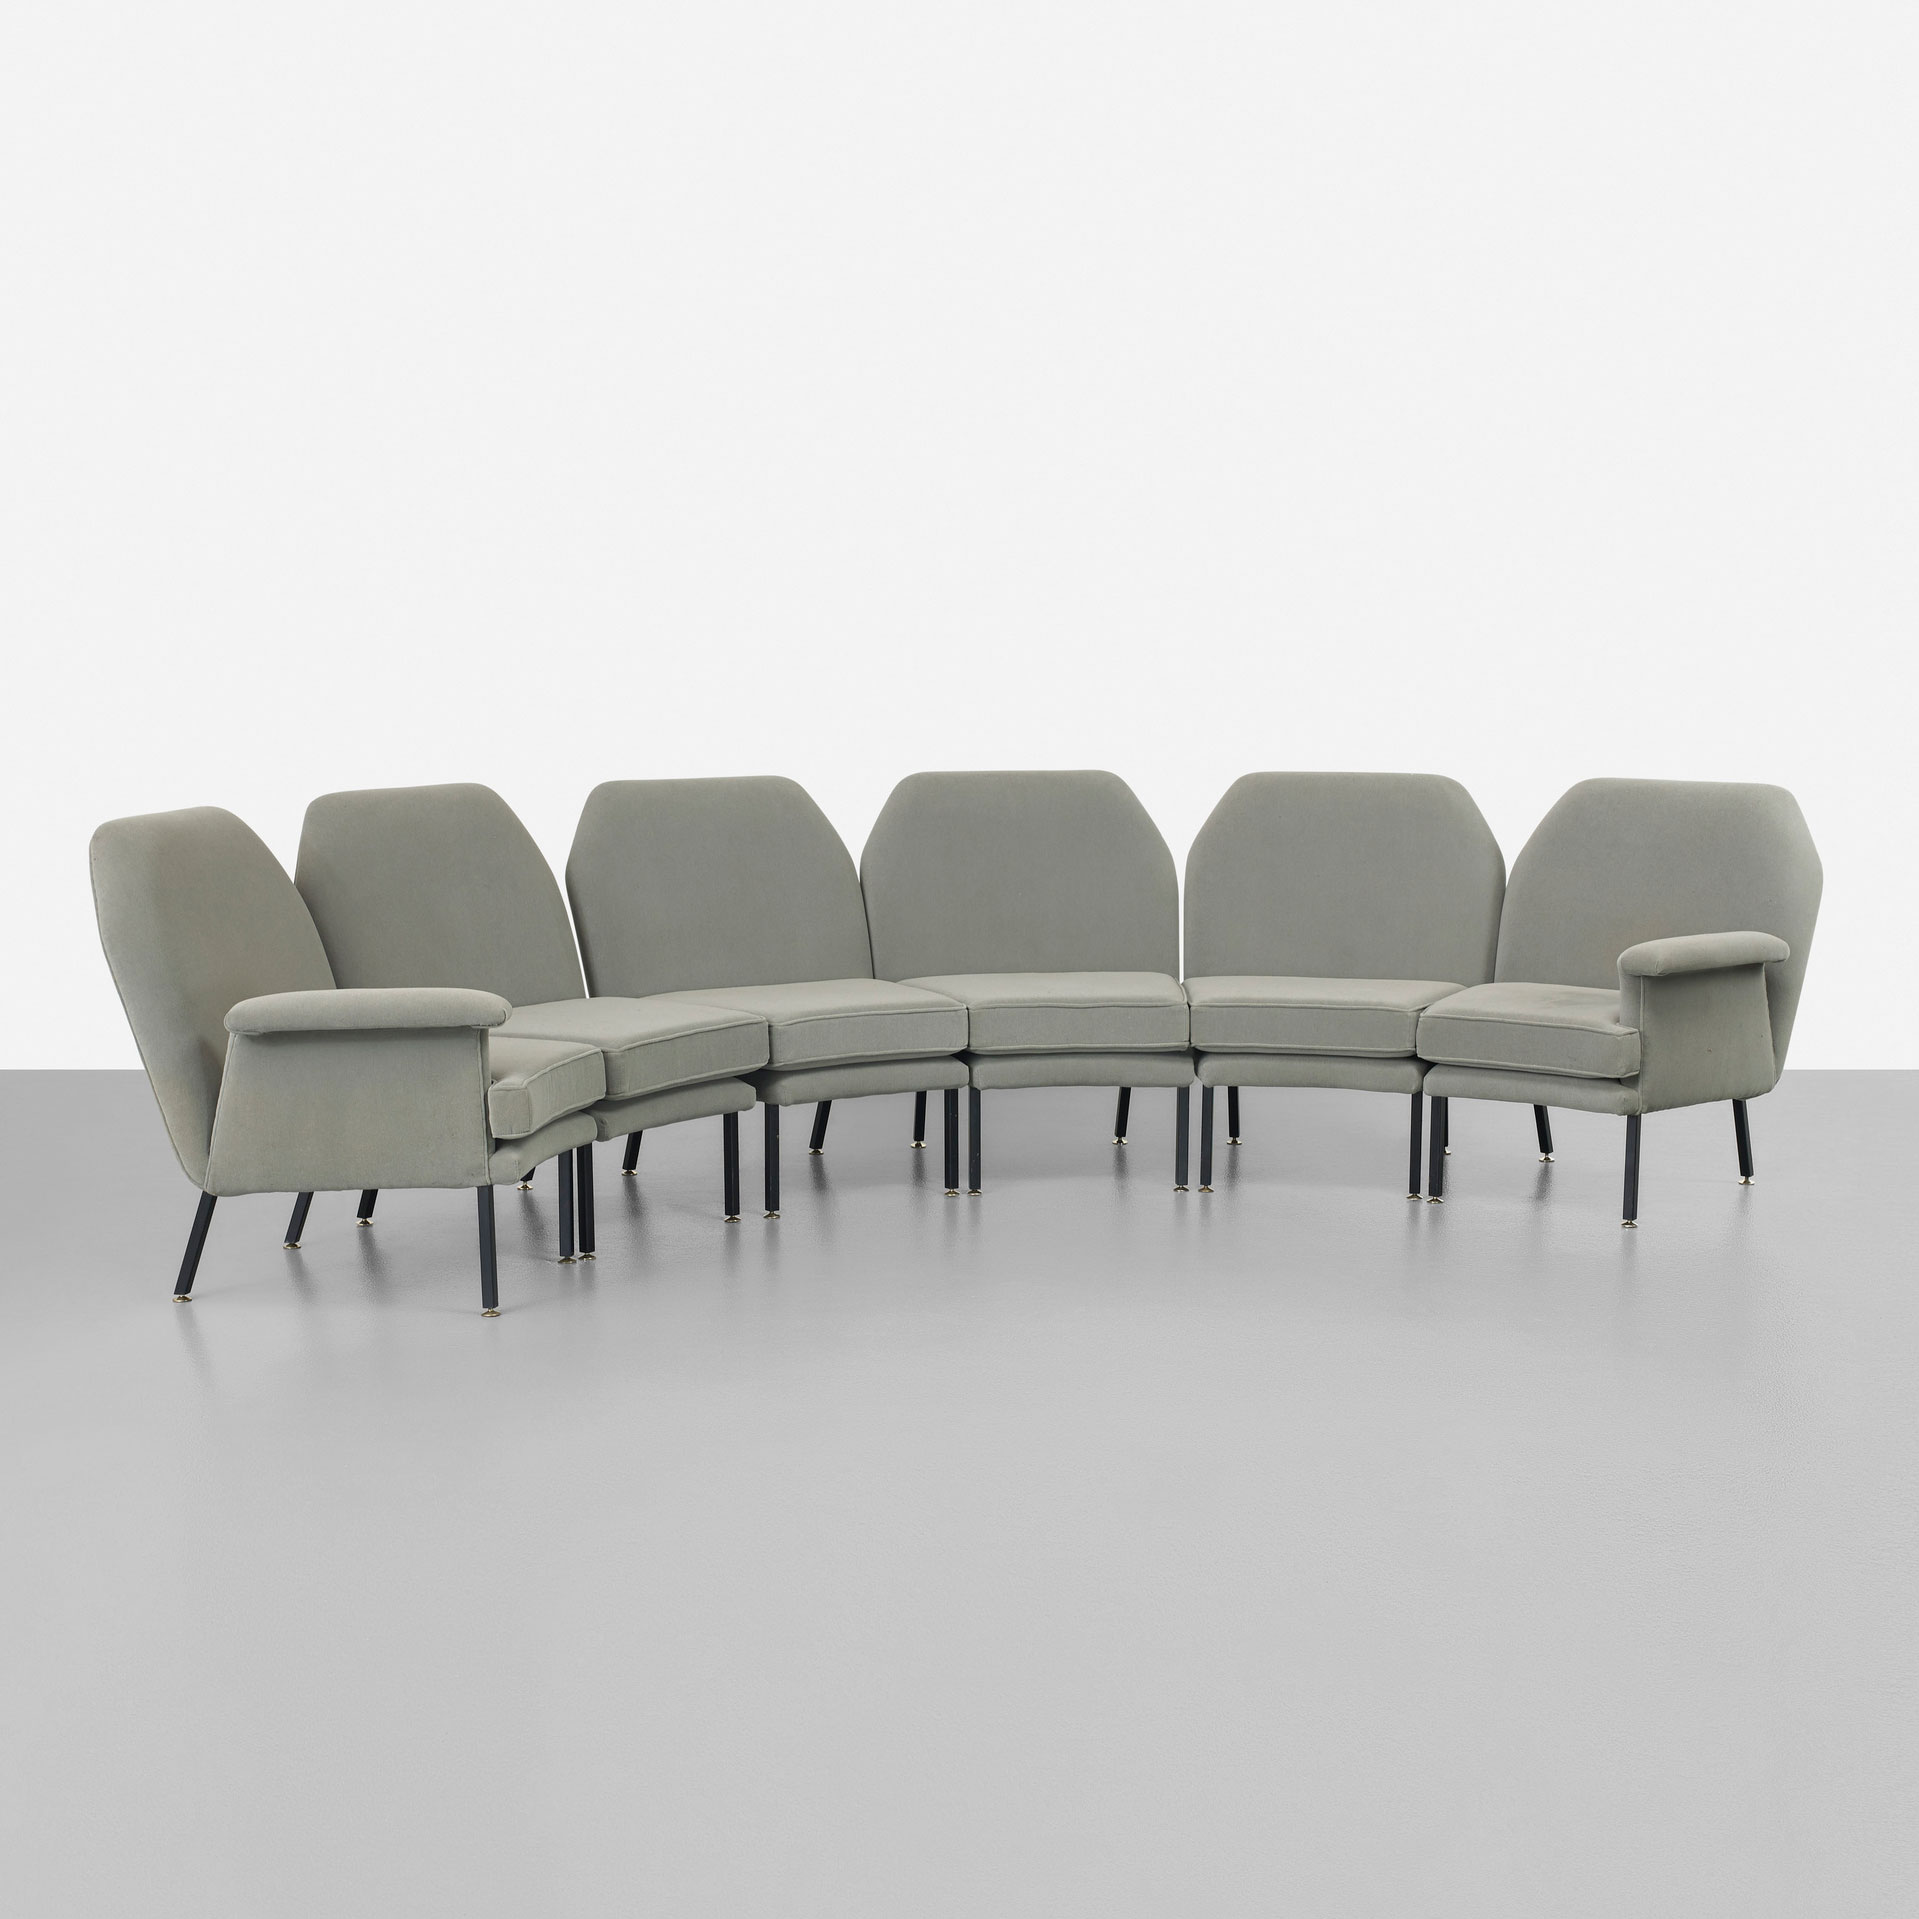 Angelo Mangiarotti  |                                  Modular sofa